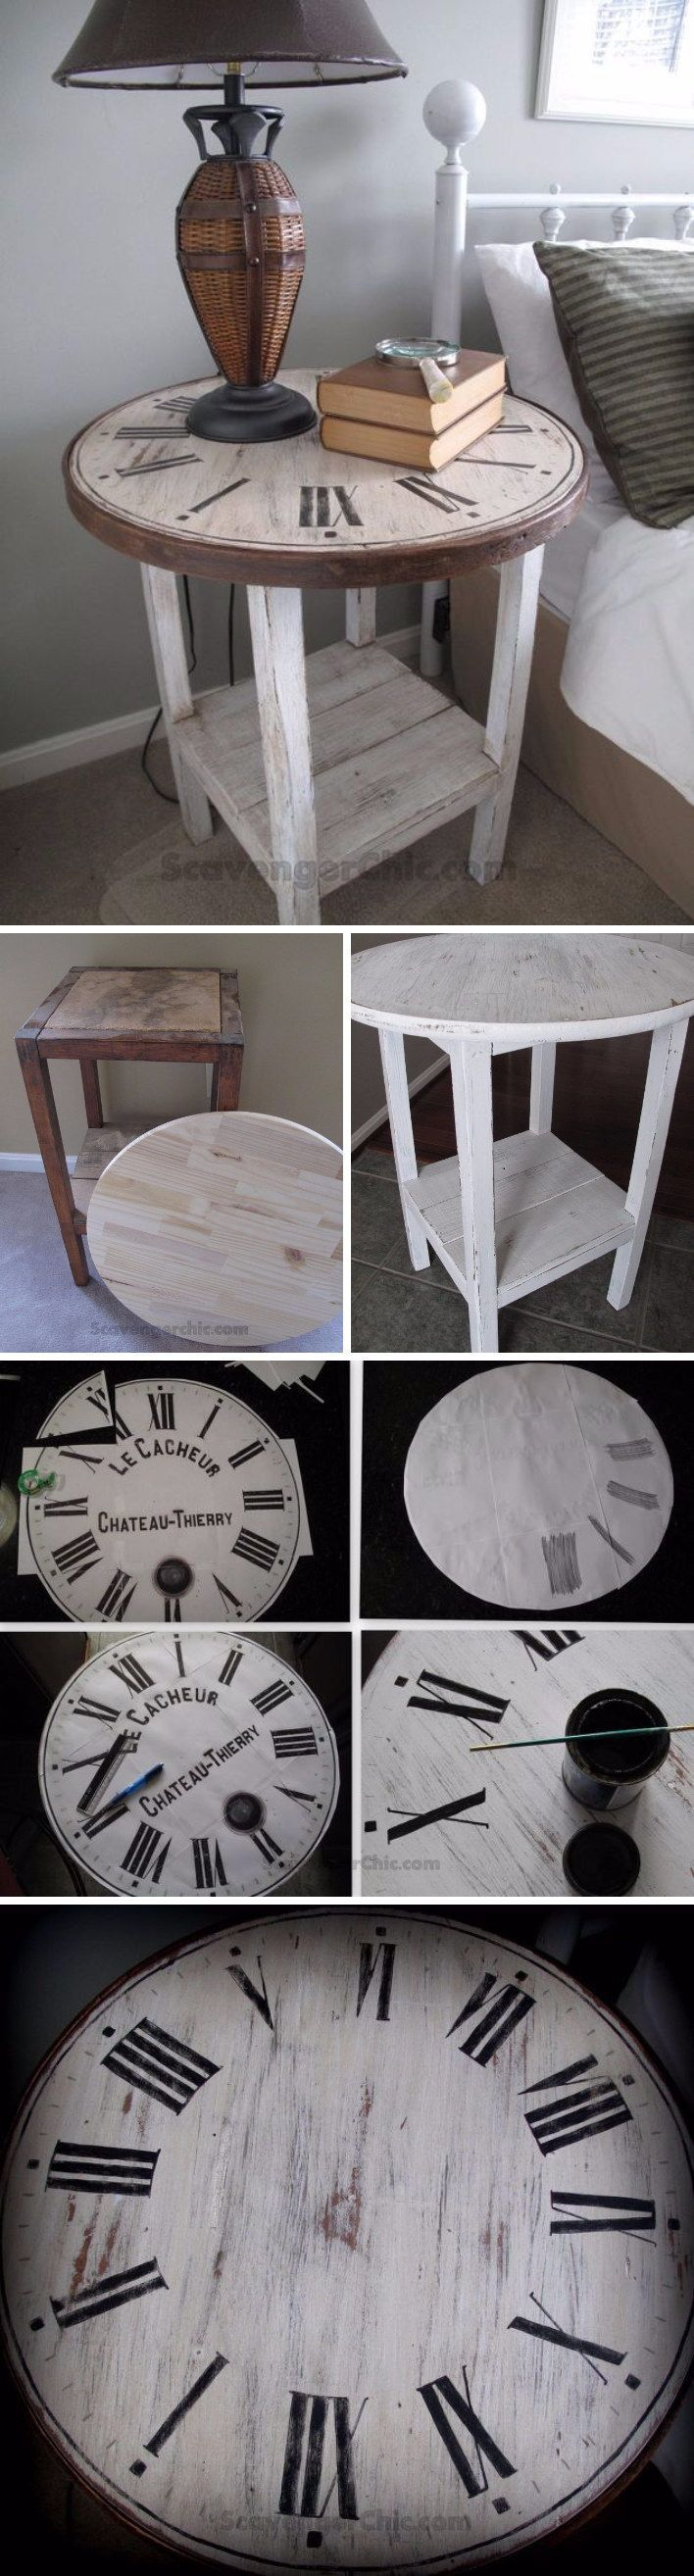 best simple creative projects images on pinterest good ideas